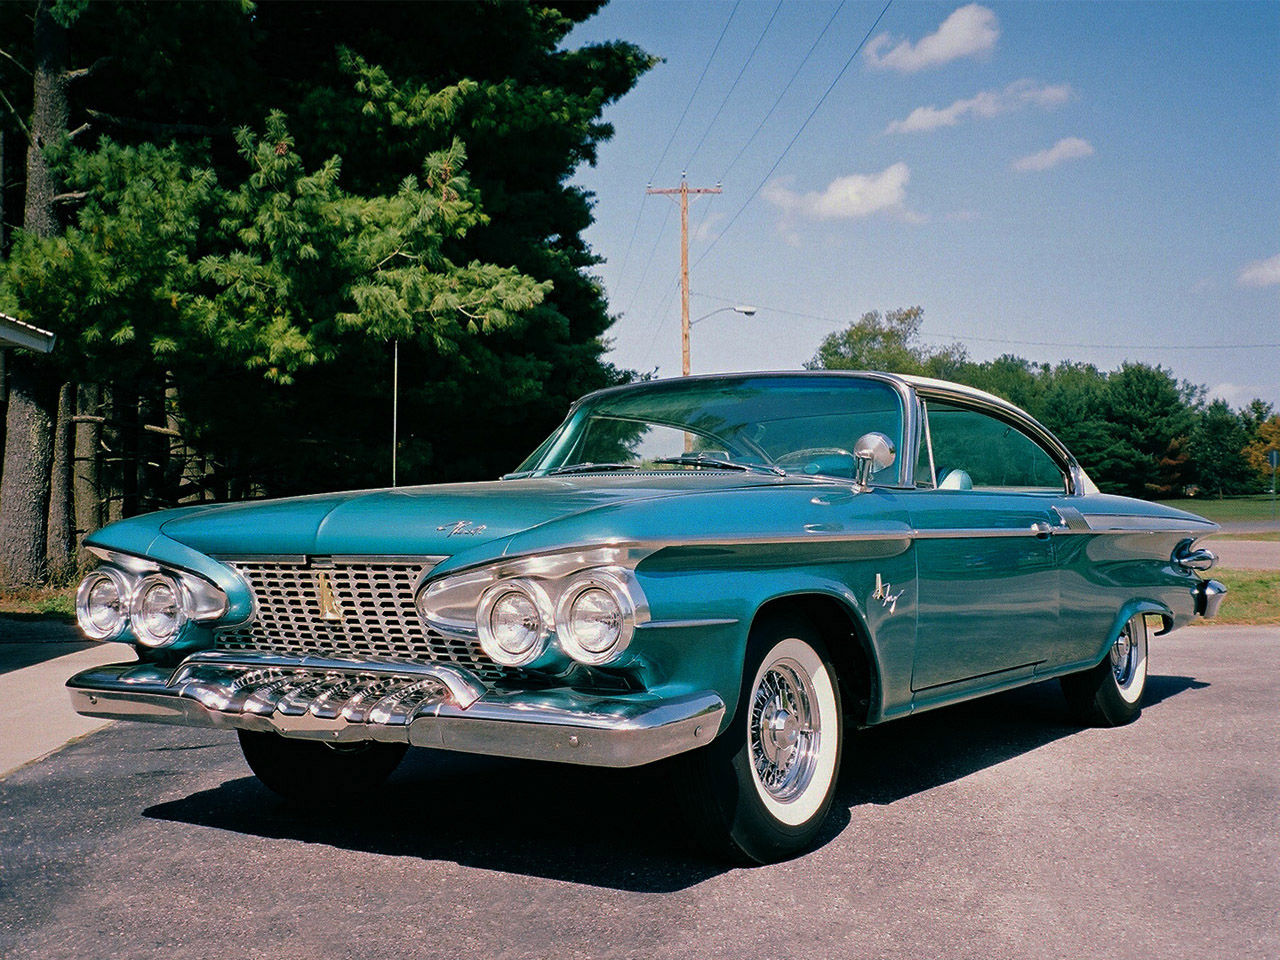 1961 Plymouth Fury Coupe Backgrounds, Compatible - PC, Mobile, Gadgets| 1280x960 px